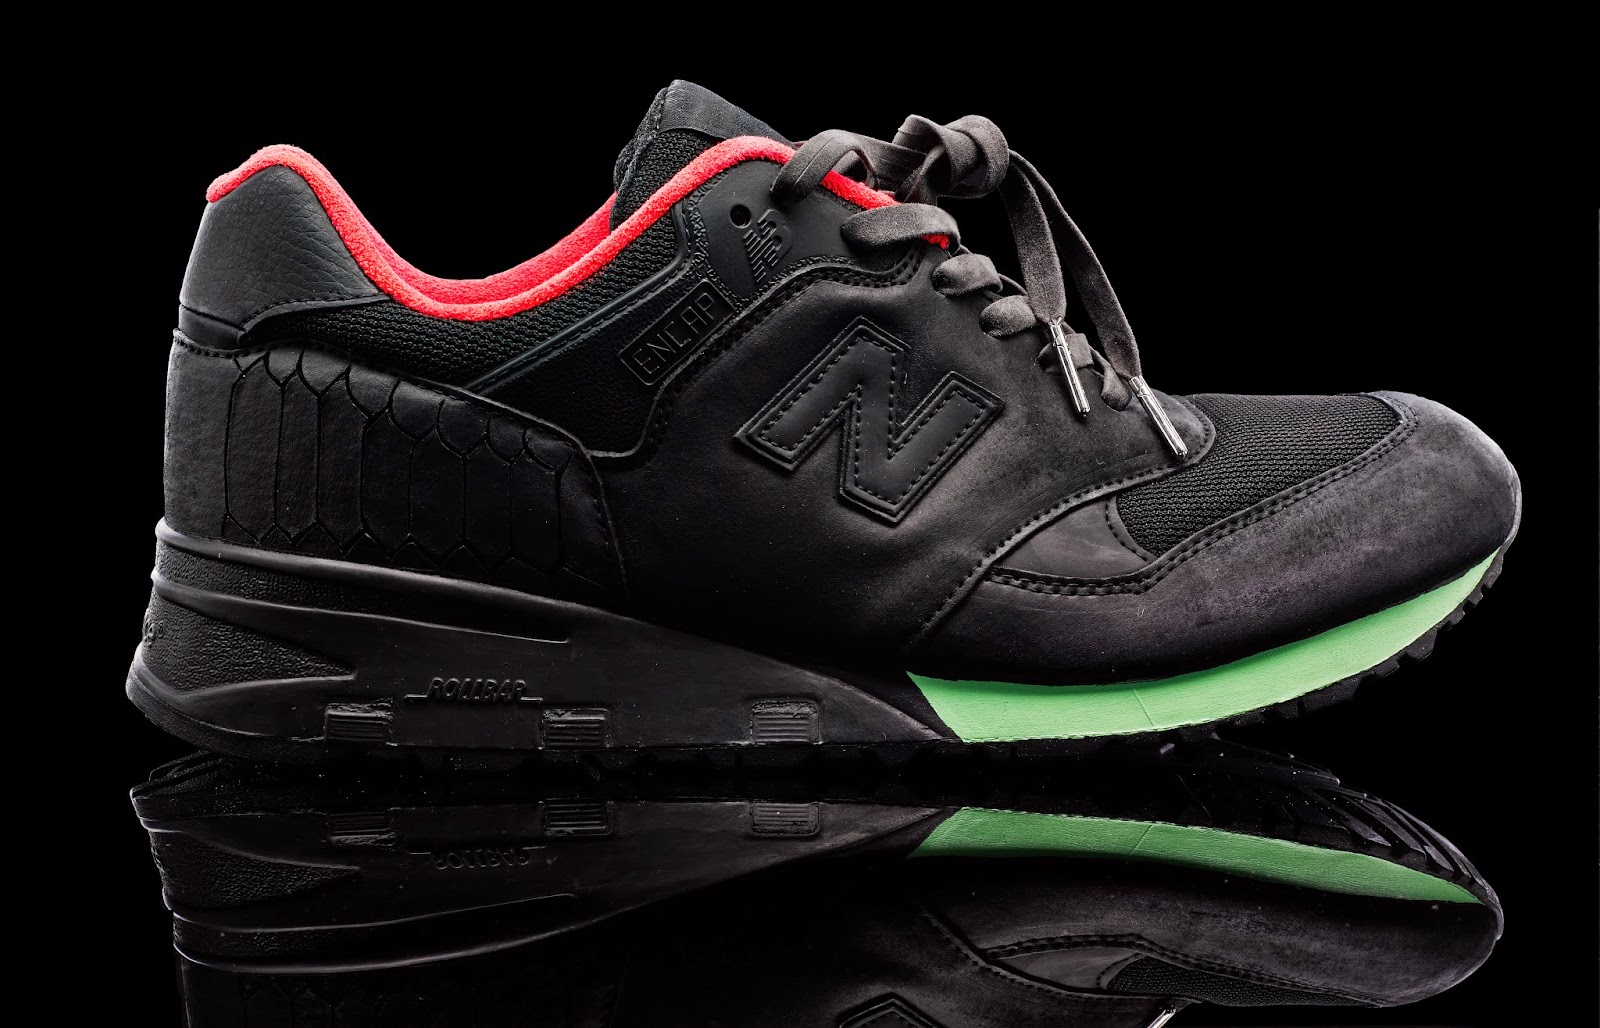 New Yeezy Running Shoes